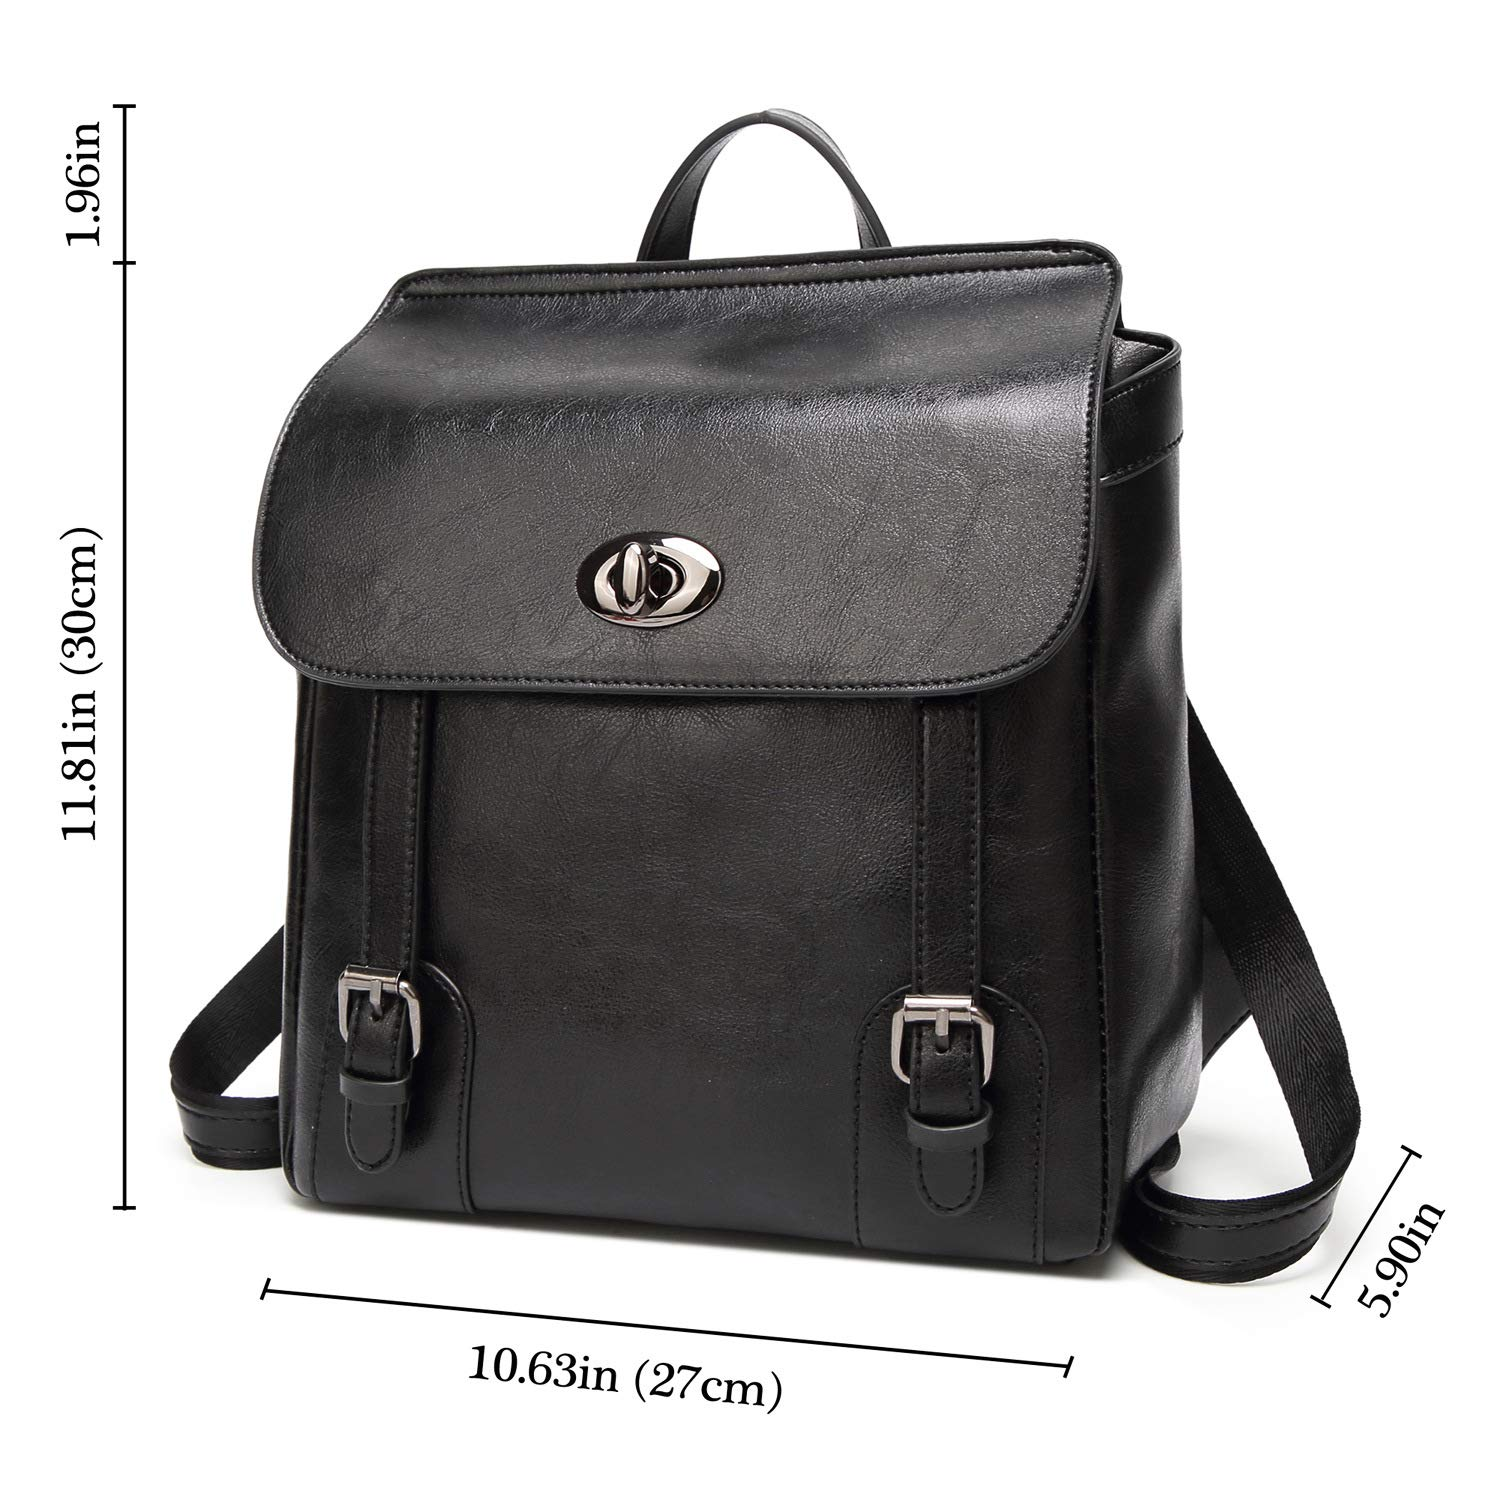 Crossbody Bags for Women Shoulder Bag Purses Small Ladies Handbags Messenger Bags by ACLULION (Image #3)